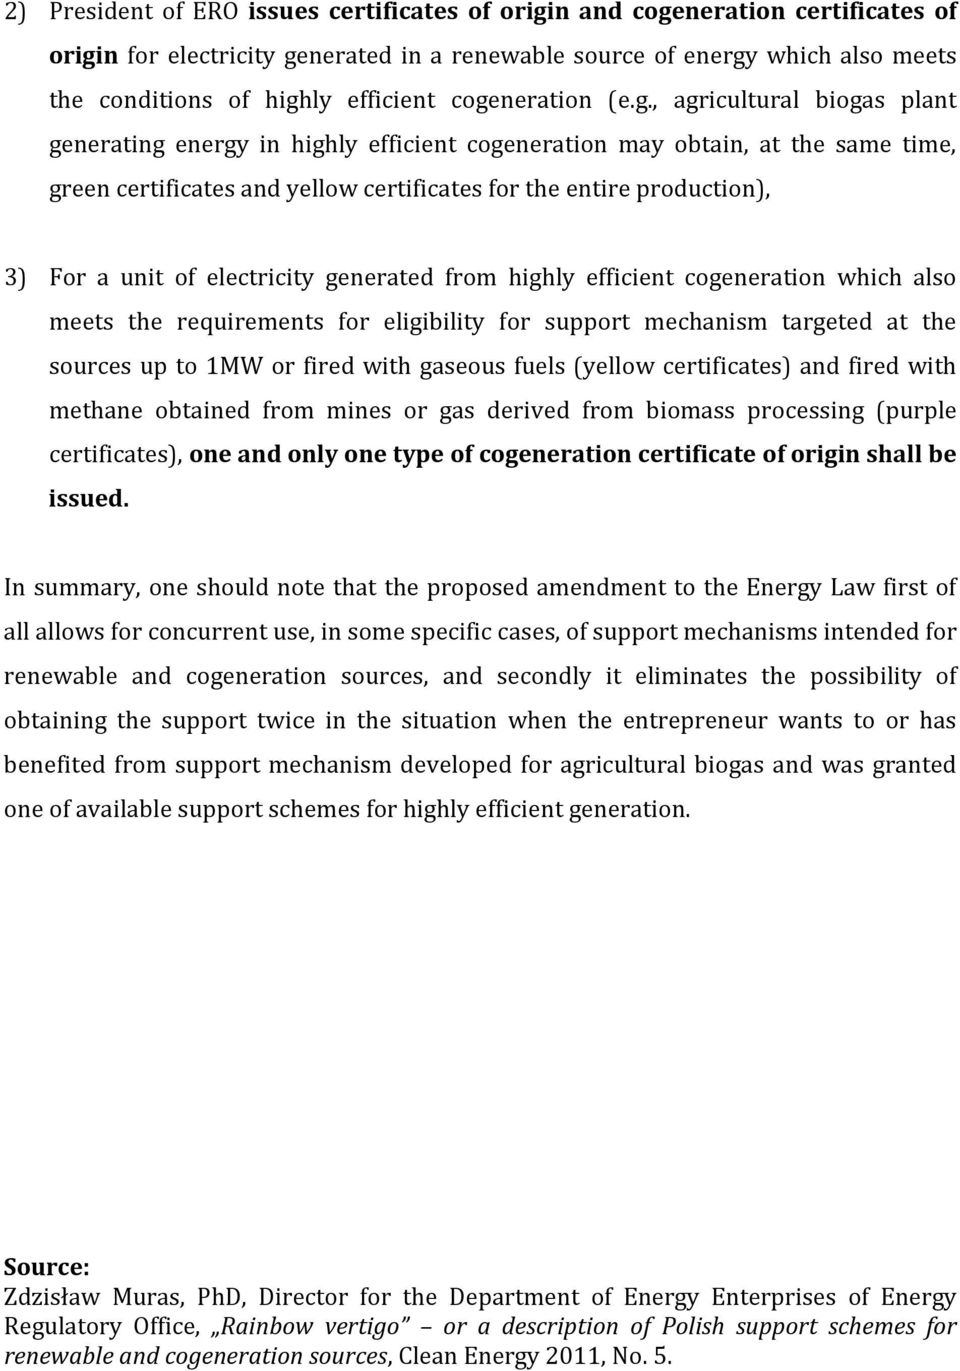 3) For a unit of electricity generated from highly efficient cogeneration which also meets the requirements for eligibility for support mechanism targeted at the sources up to 1MW or fired with